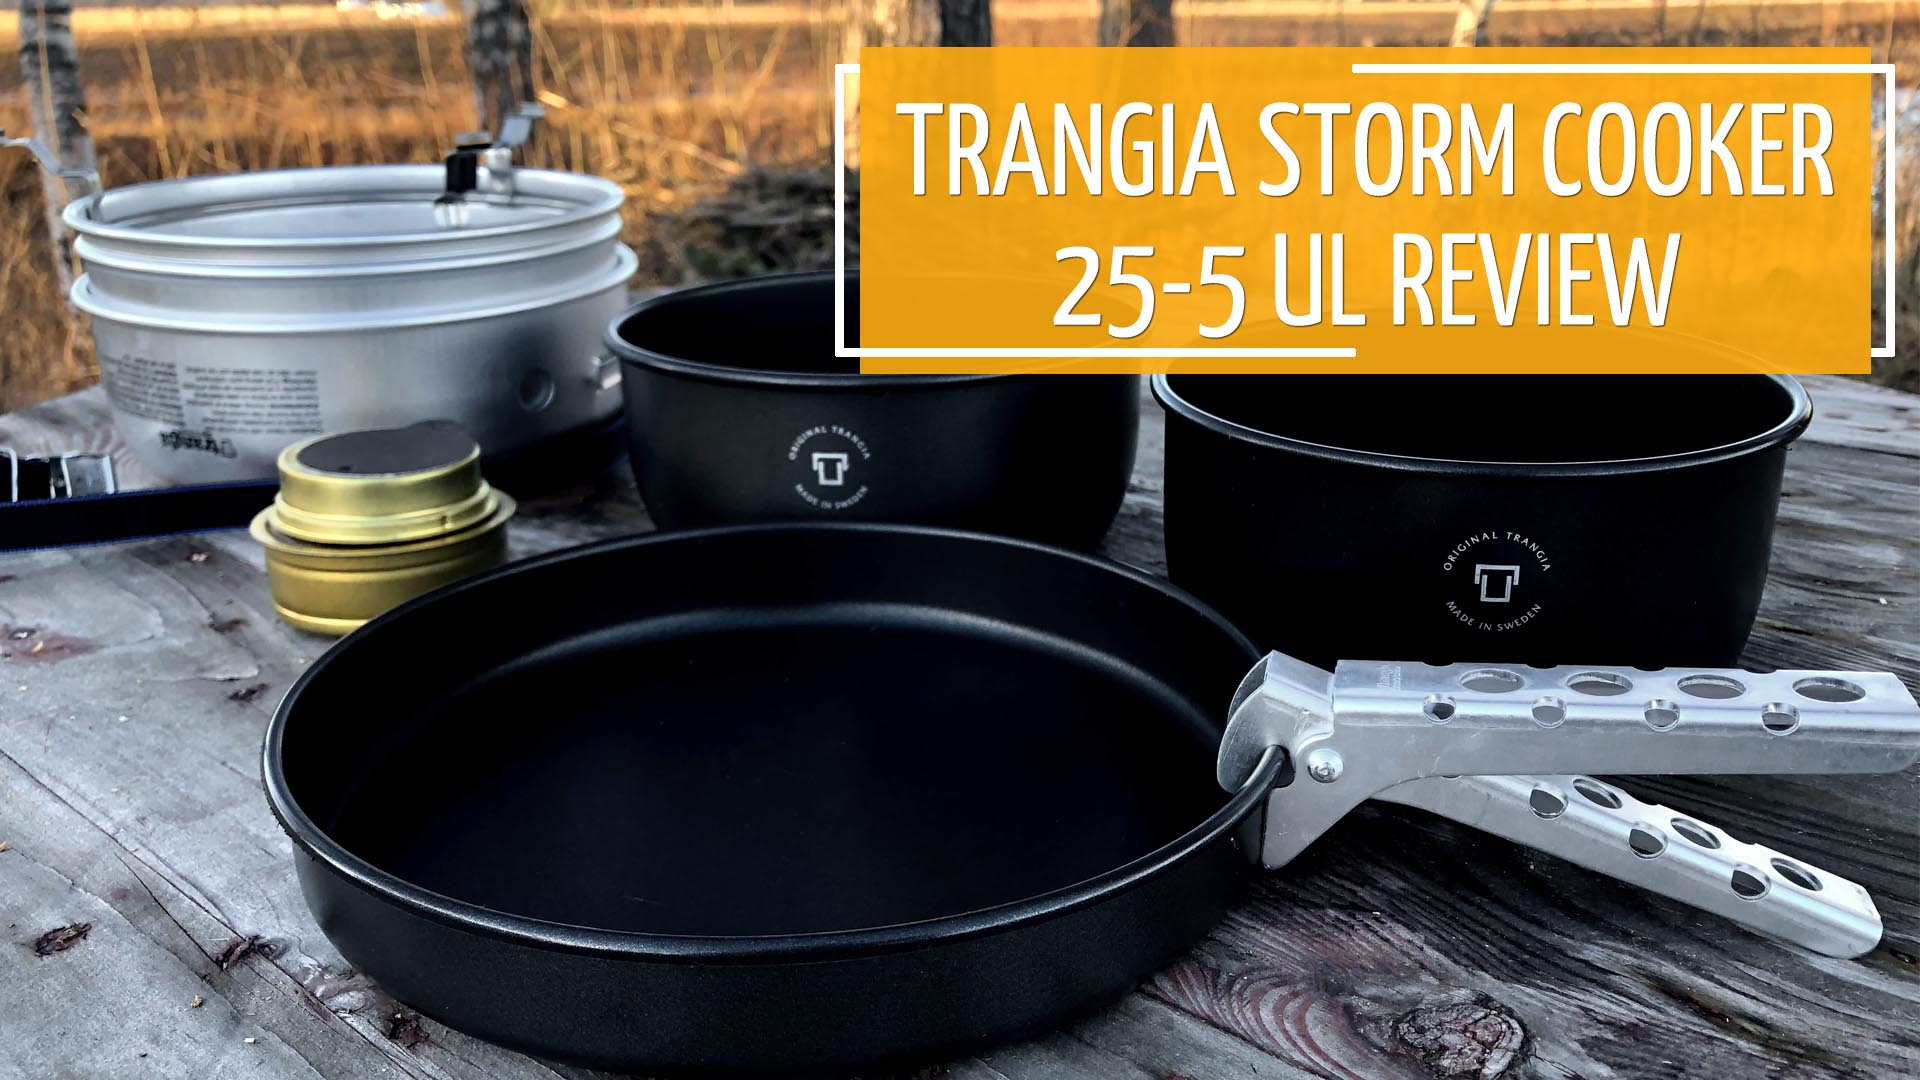 Trangia Storm Cooker 25-5 UL Review